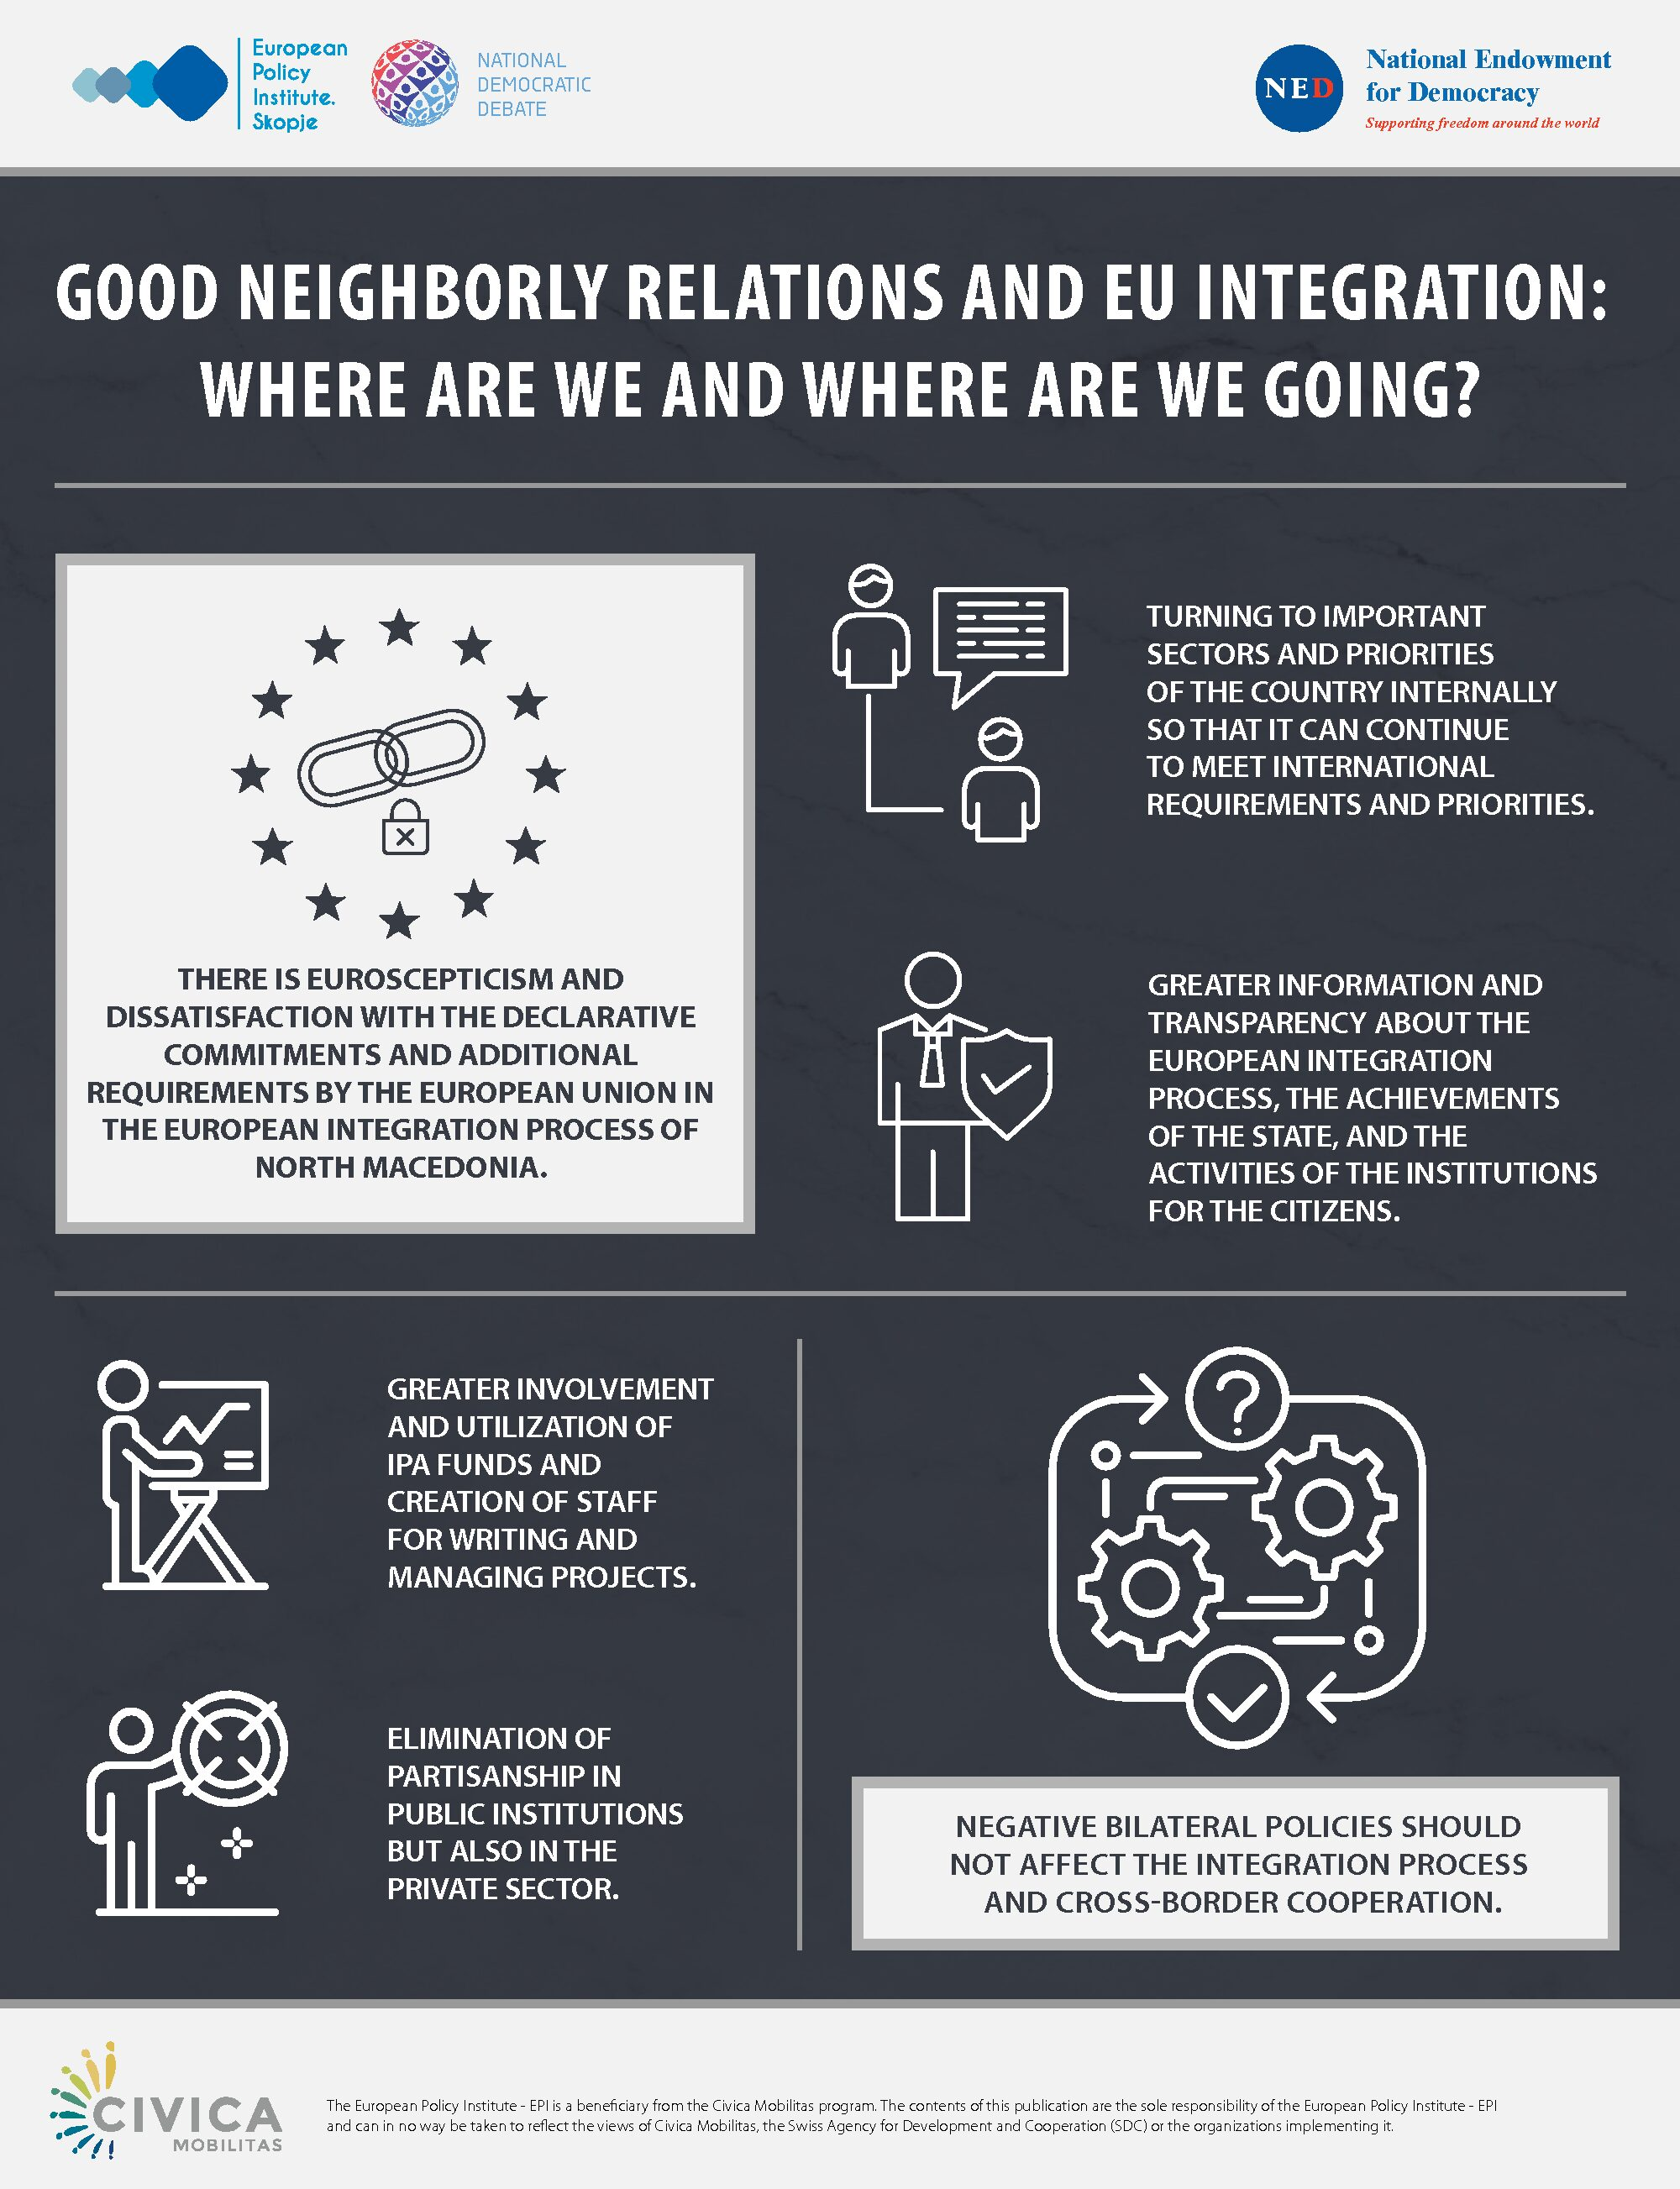 [Infographic] Good neighborly relations and EU integration: Where are we and where are we going?